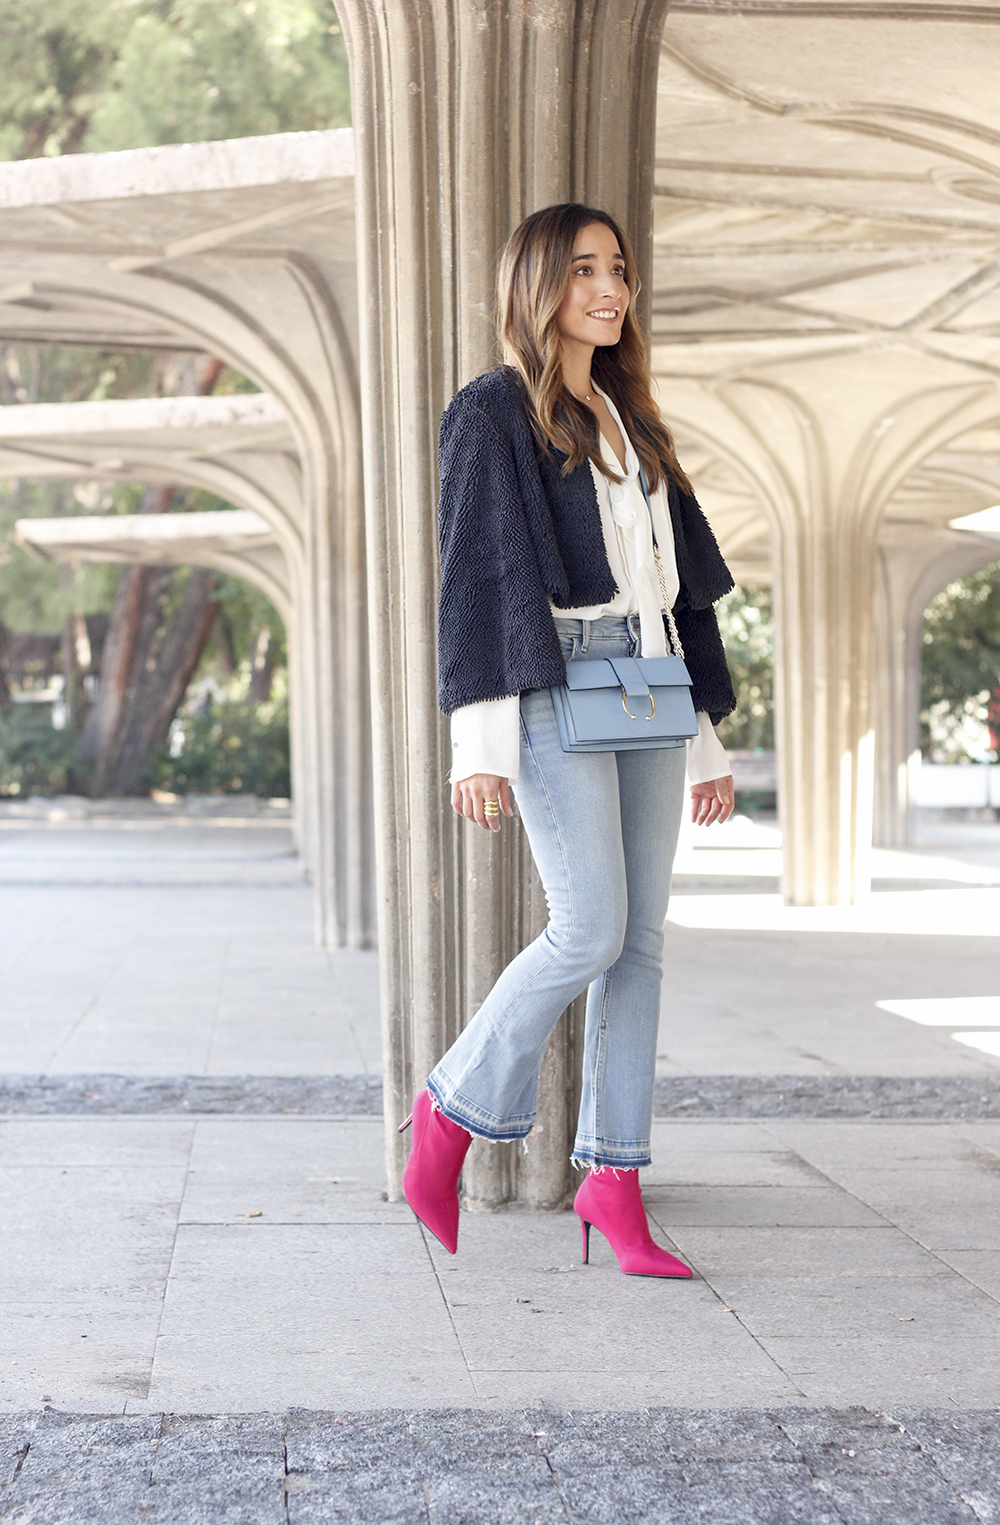 fucsia ankle boots flared jeans suede chaquet uterqüe white shirt outfit trend fashion04